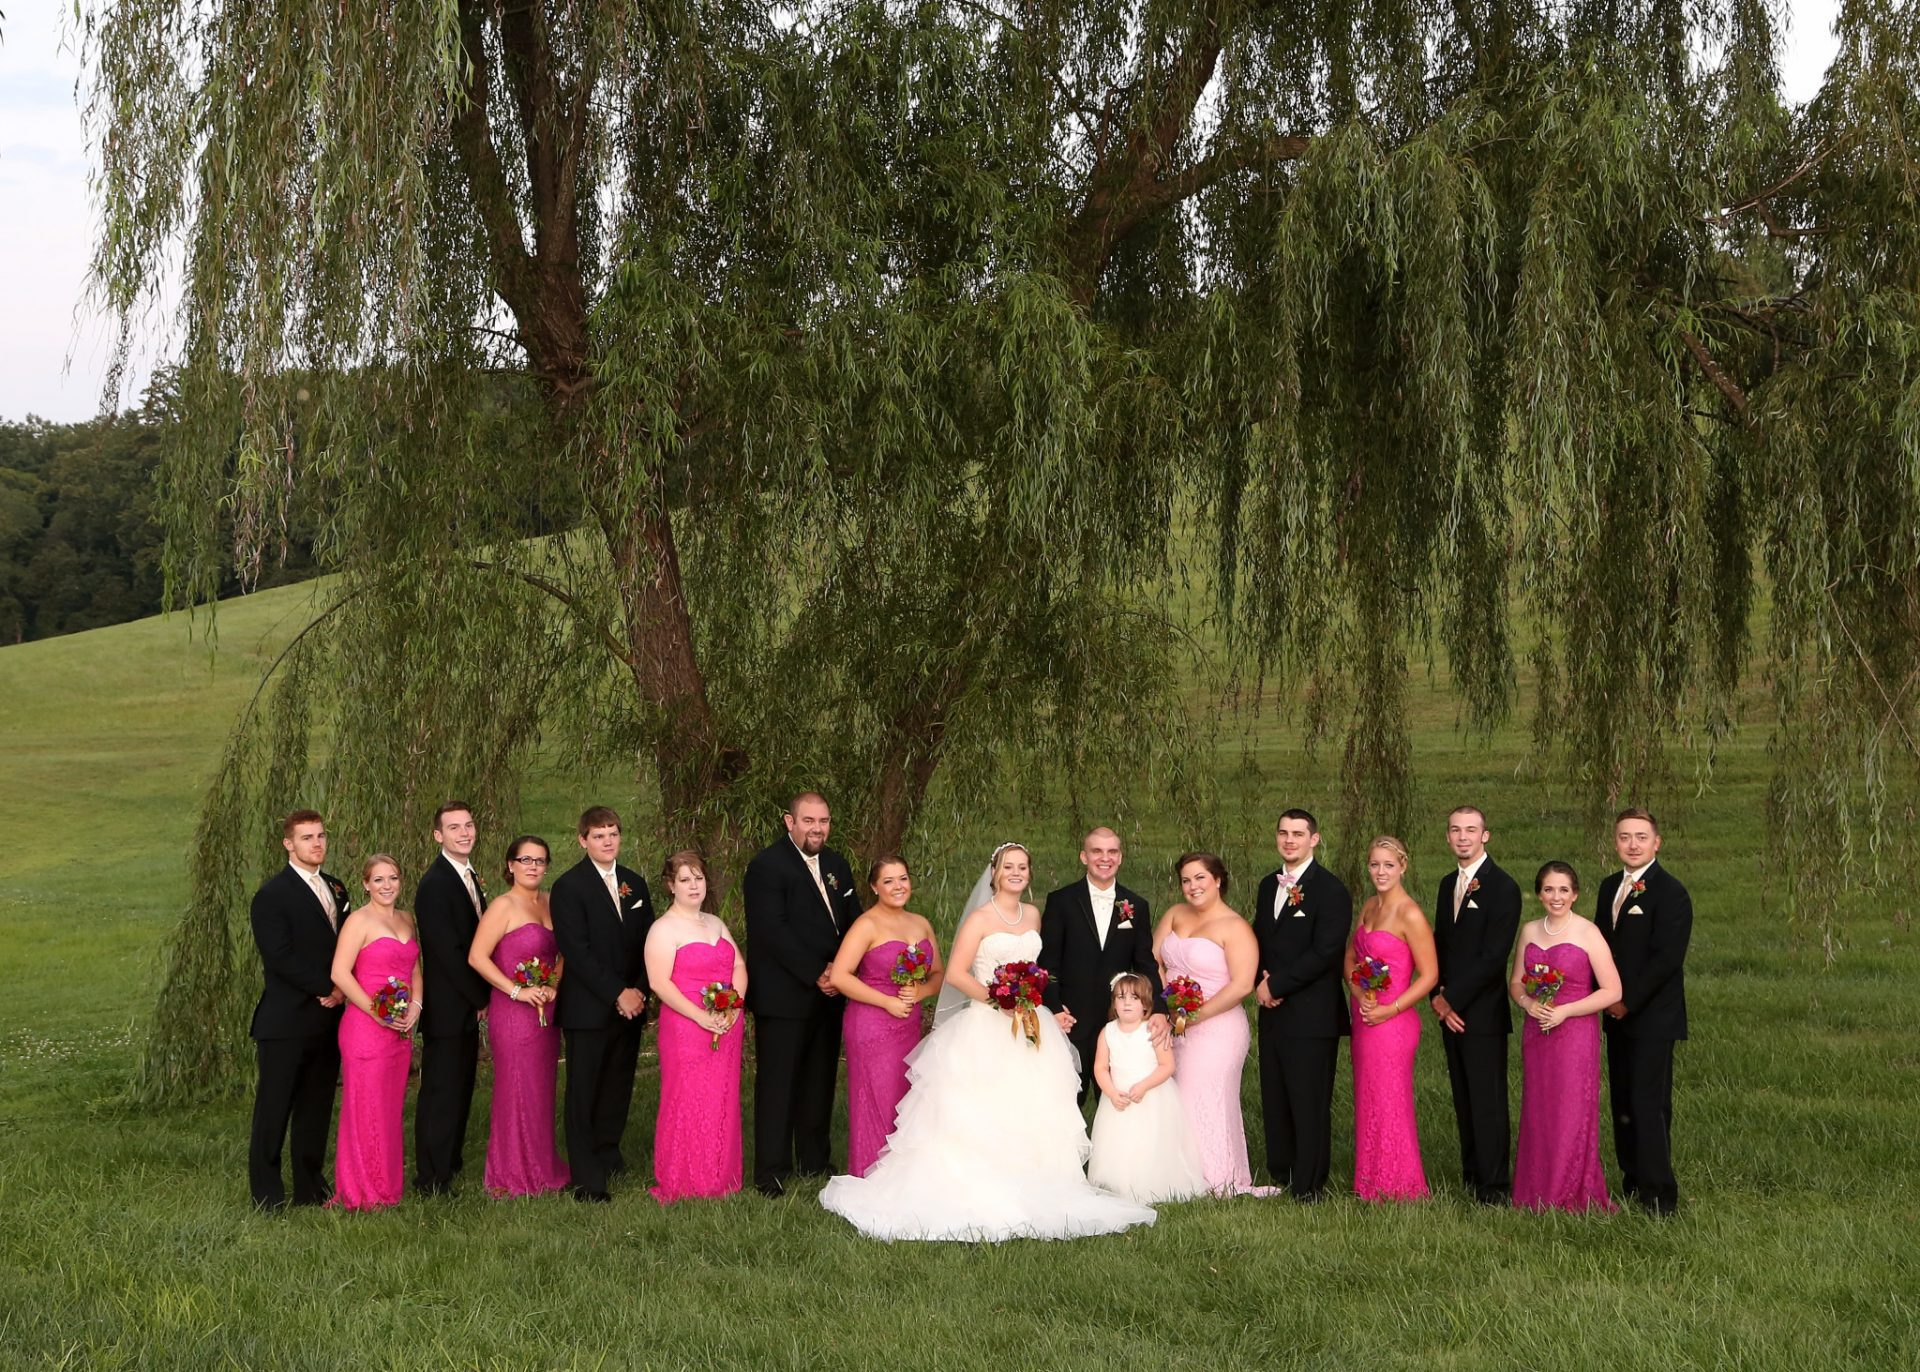 Bridal party poses in front of old willow tree at Morningside Inn, wedding venue in maryland